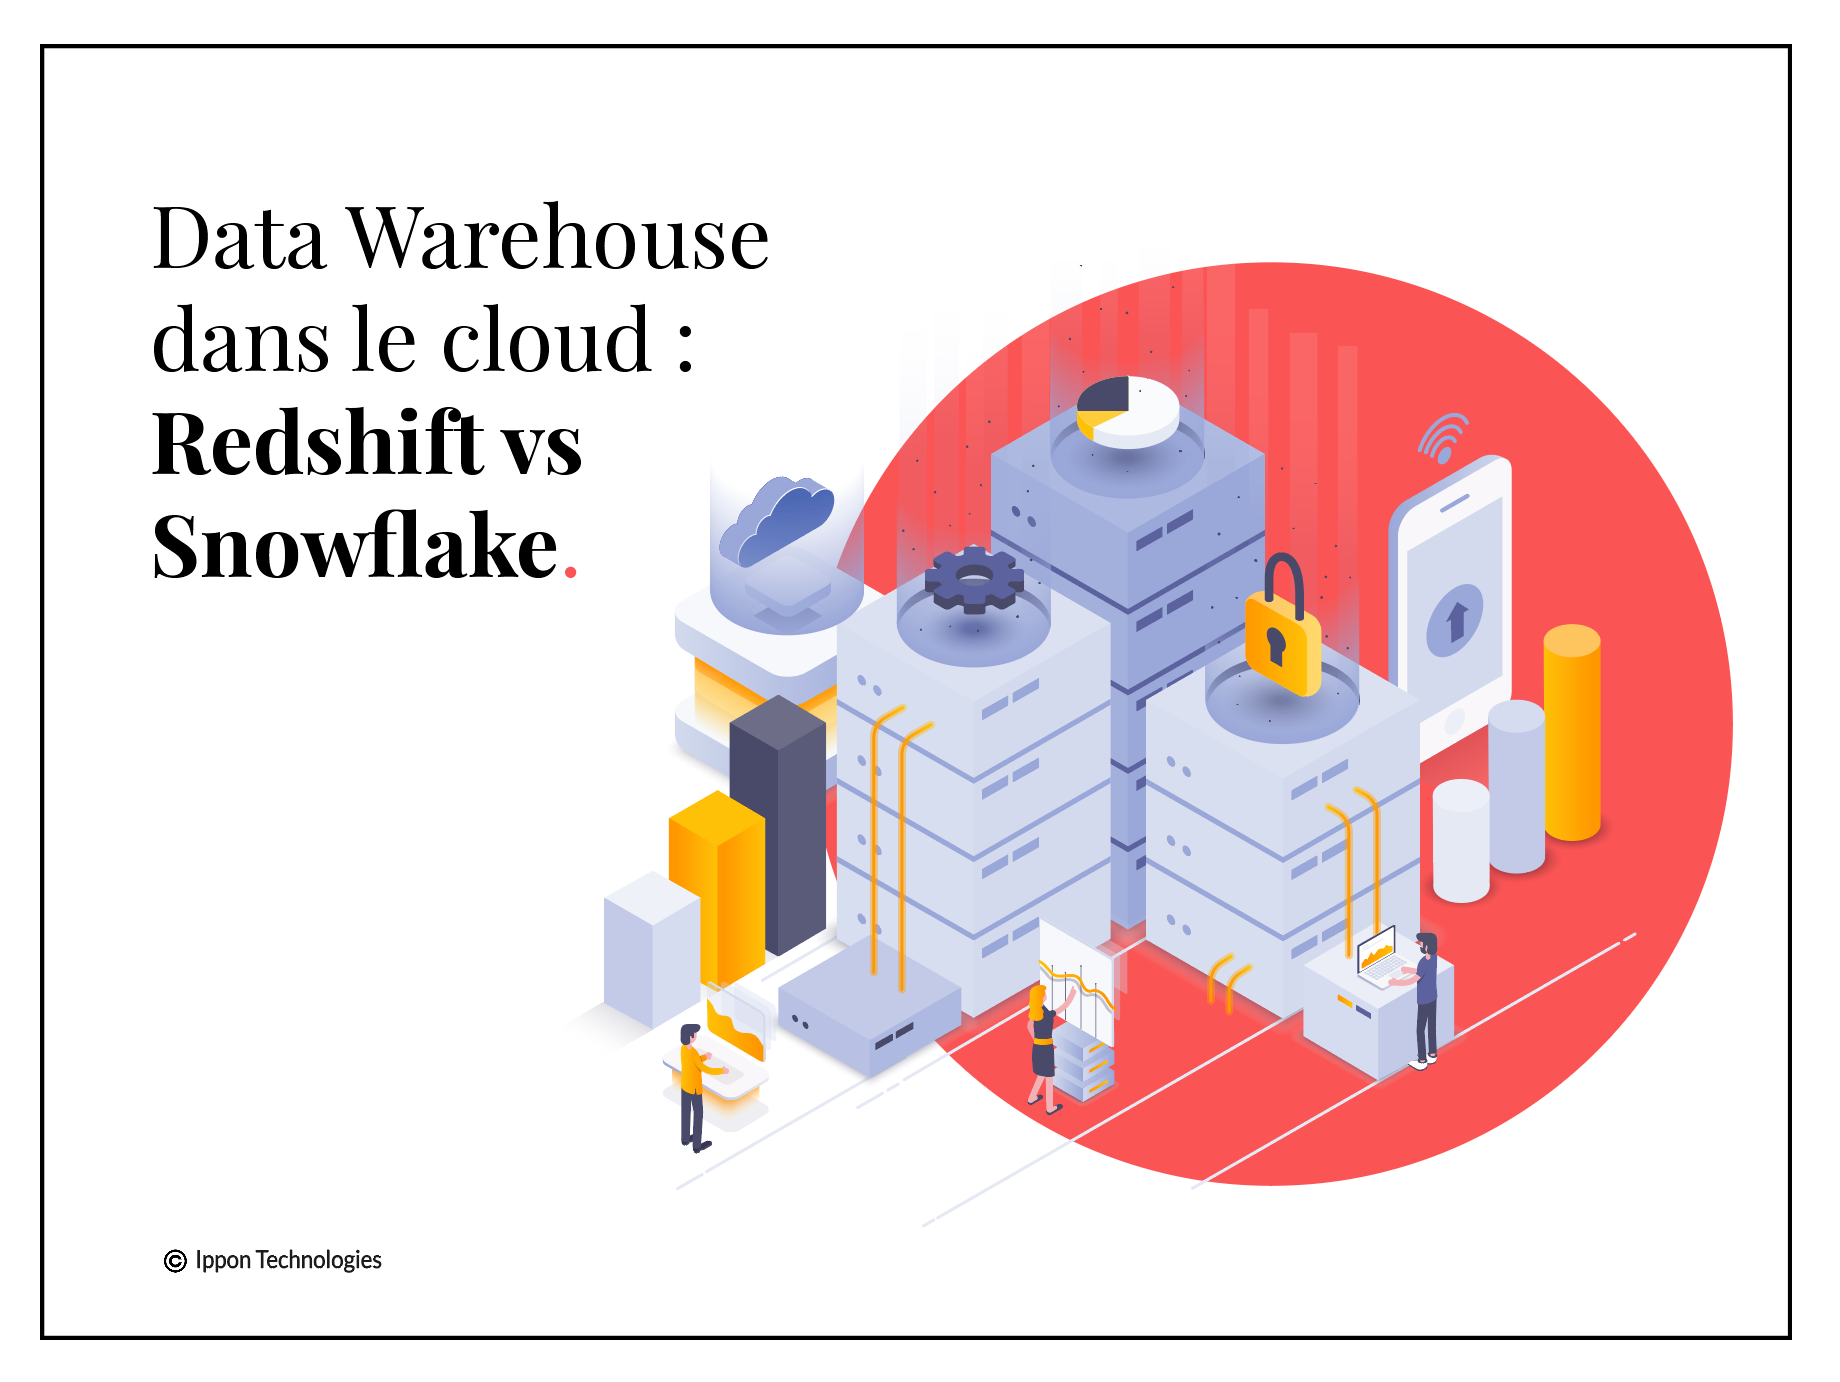 DATA WAREHOUSE CLOUD Redshift vs Snowflake